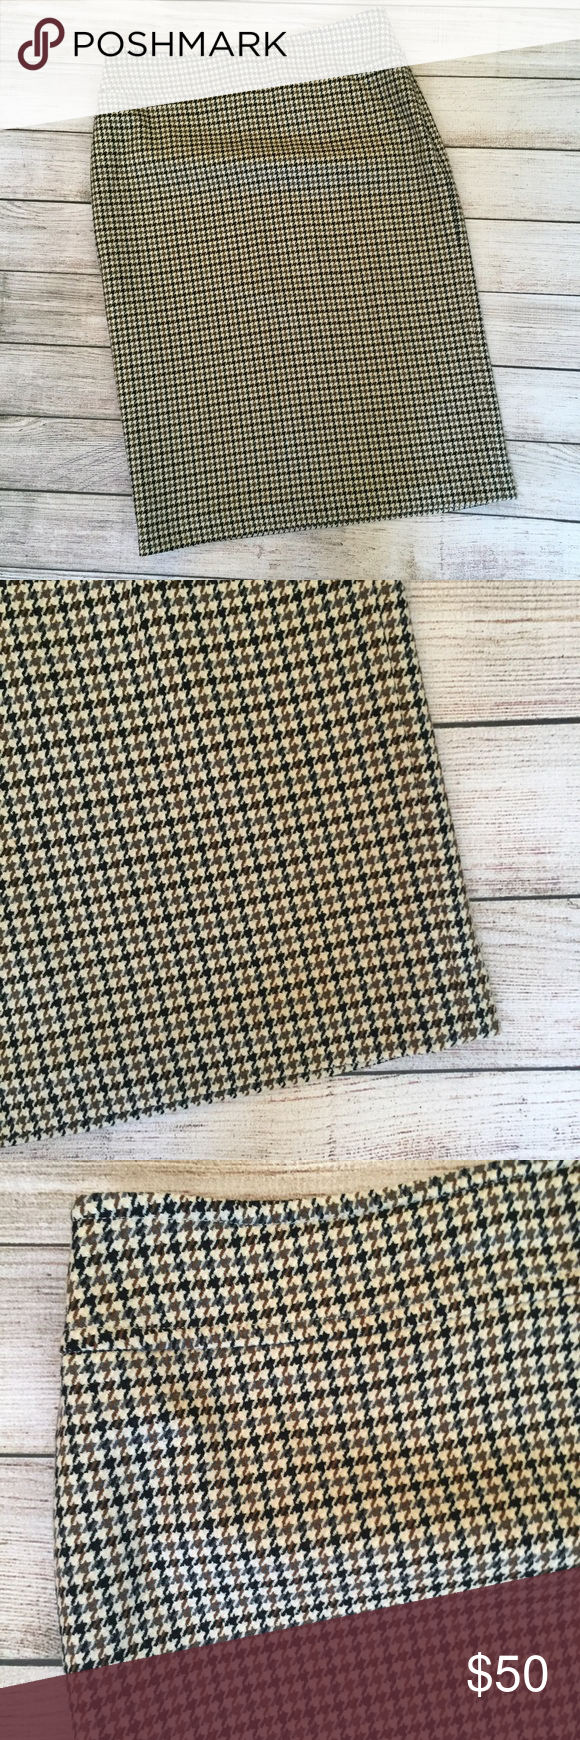 """Brooks Brothers Wool Houndstooth Pencil Skirt Wool blend. Houndstooth design throughout. Fully lined. Hidden side zipper closure. Waist 15"""" across. Length 25"""". Excellent condition 🚫NO TRADES/NO MODELING🚫✅BUNDLE TO SAVE ✅ Brooks Brothers Skirts Pencil"""